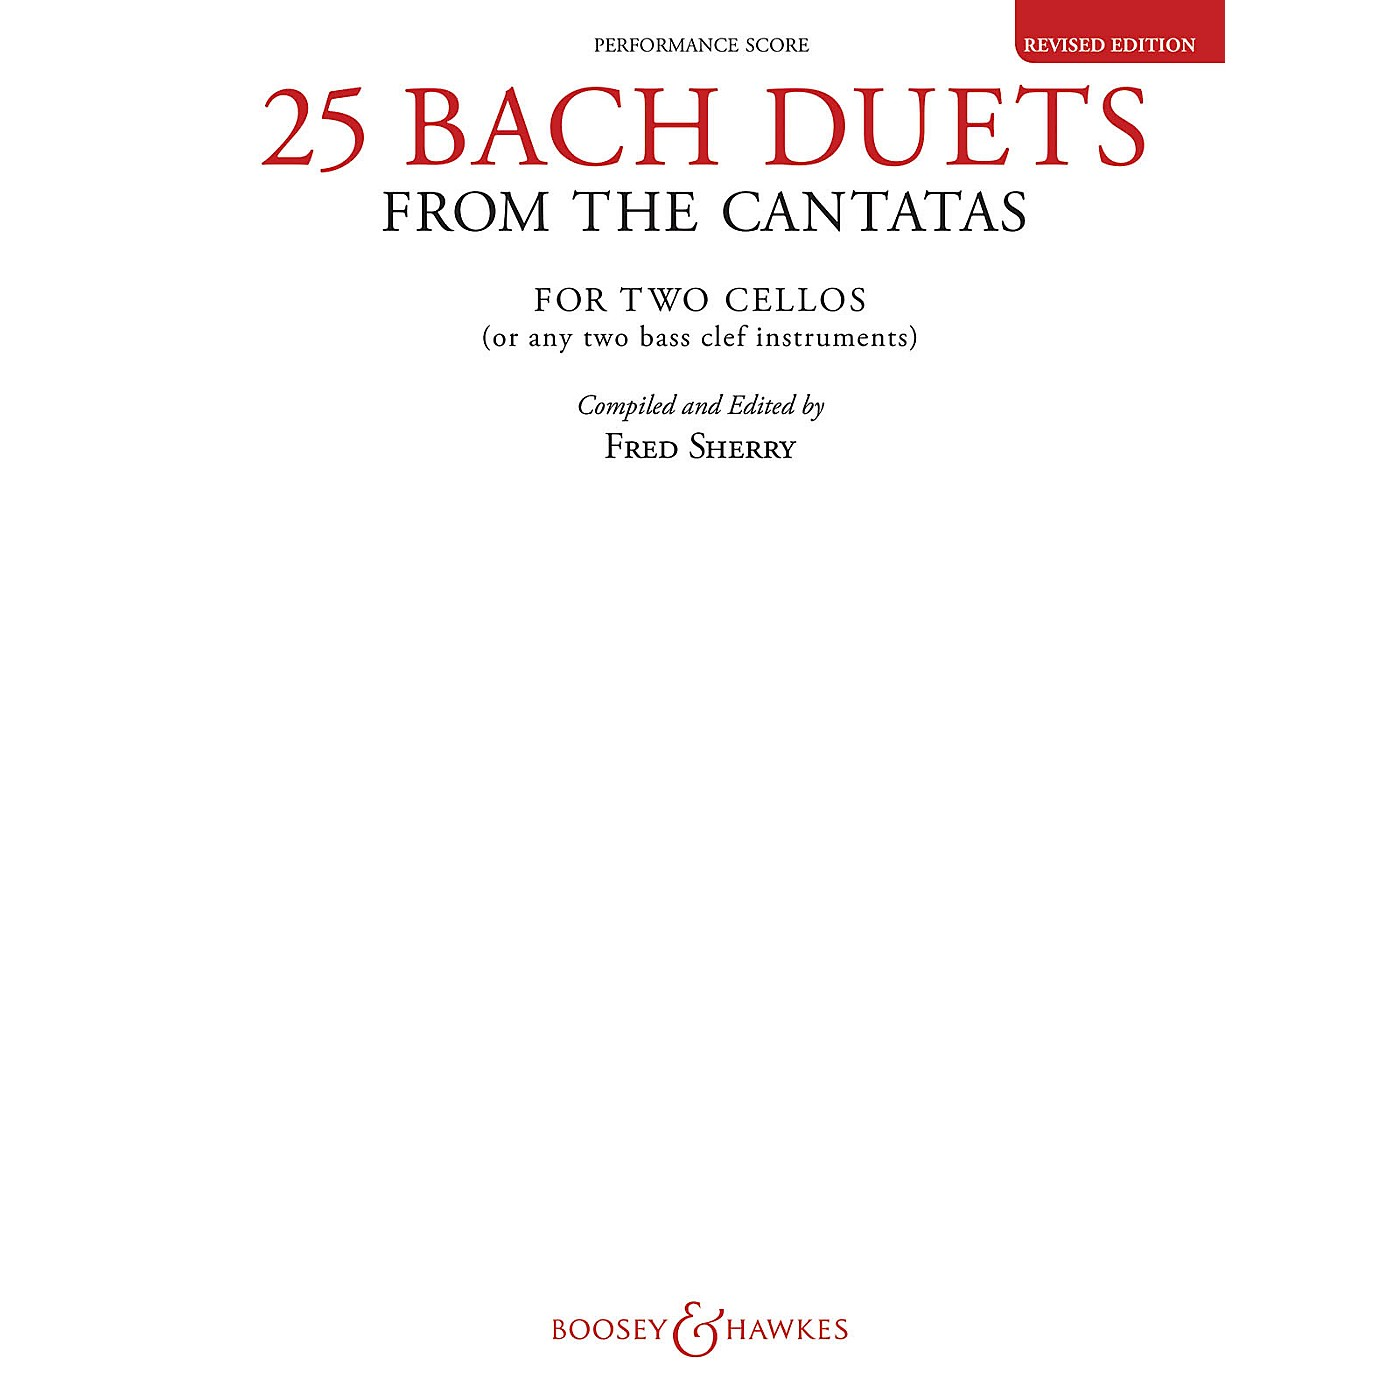 Boosey and Hawkes 25 Bach Duets from the Cantatas (Two Cellos Performance Score) Boosey & Hawkes Chamber Music Series thumbnail